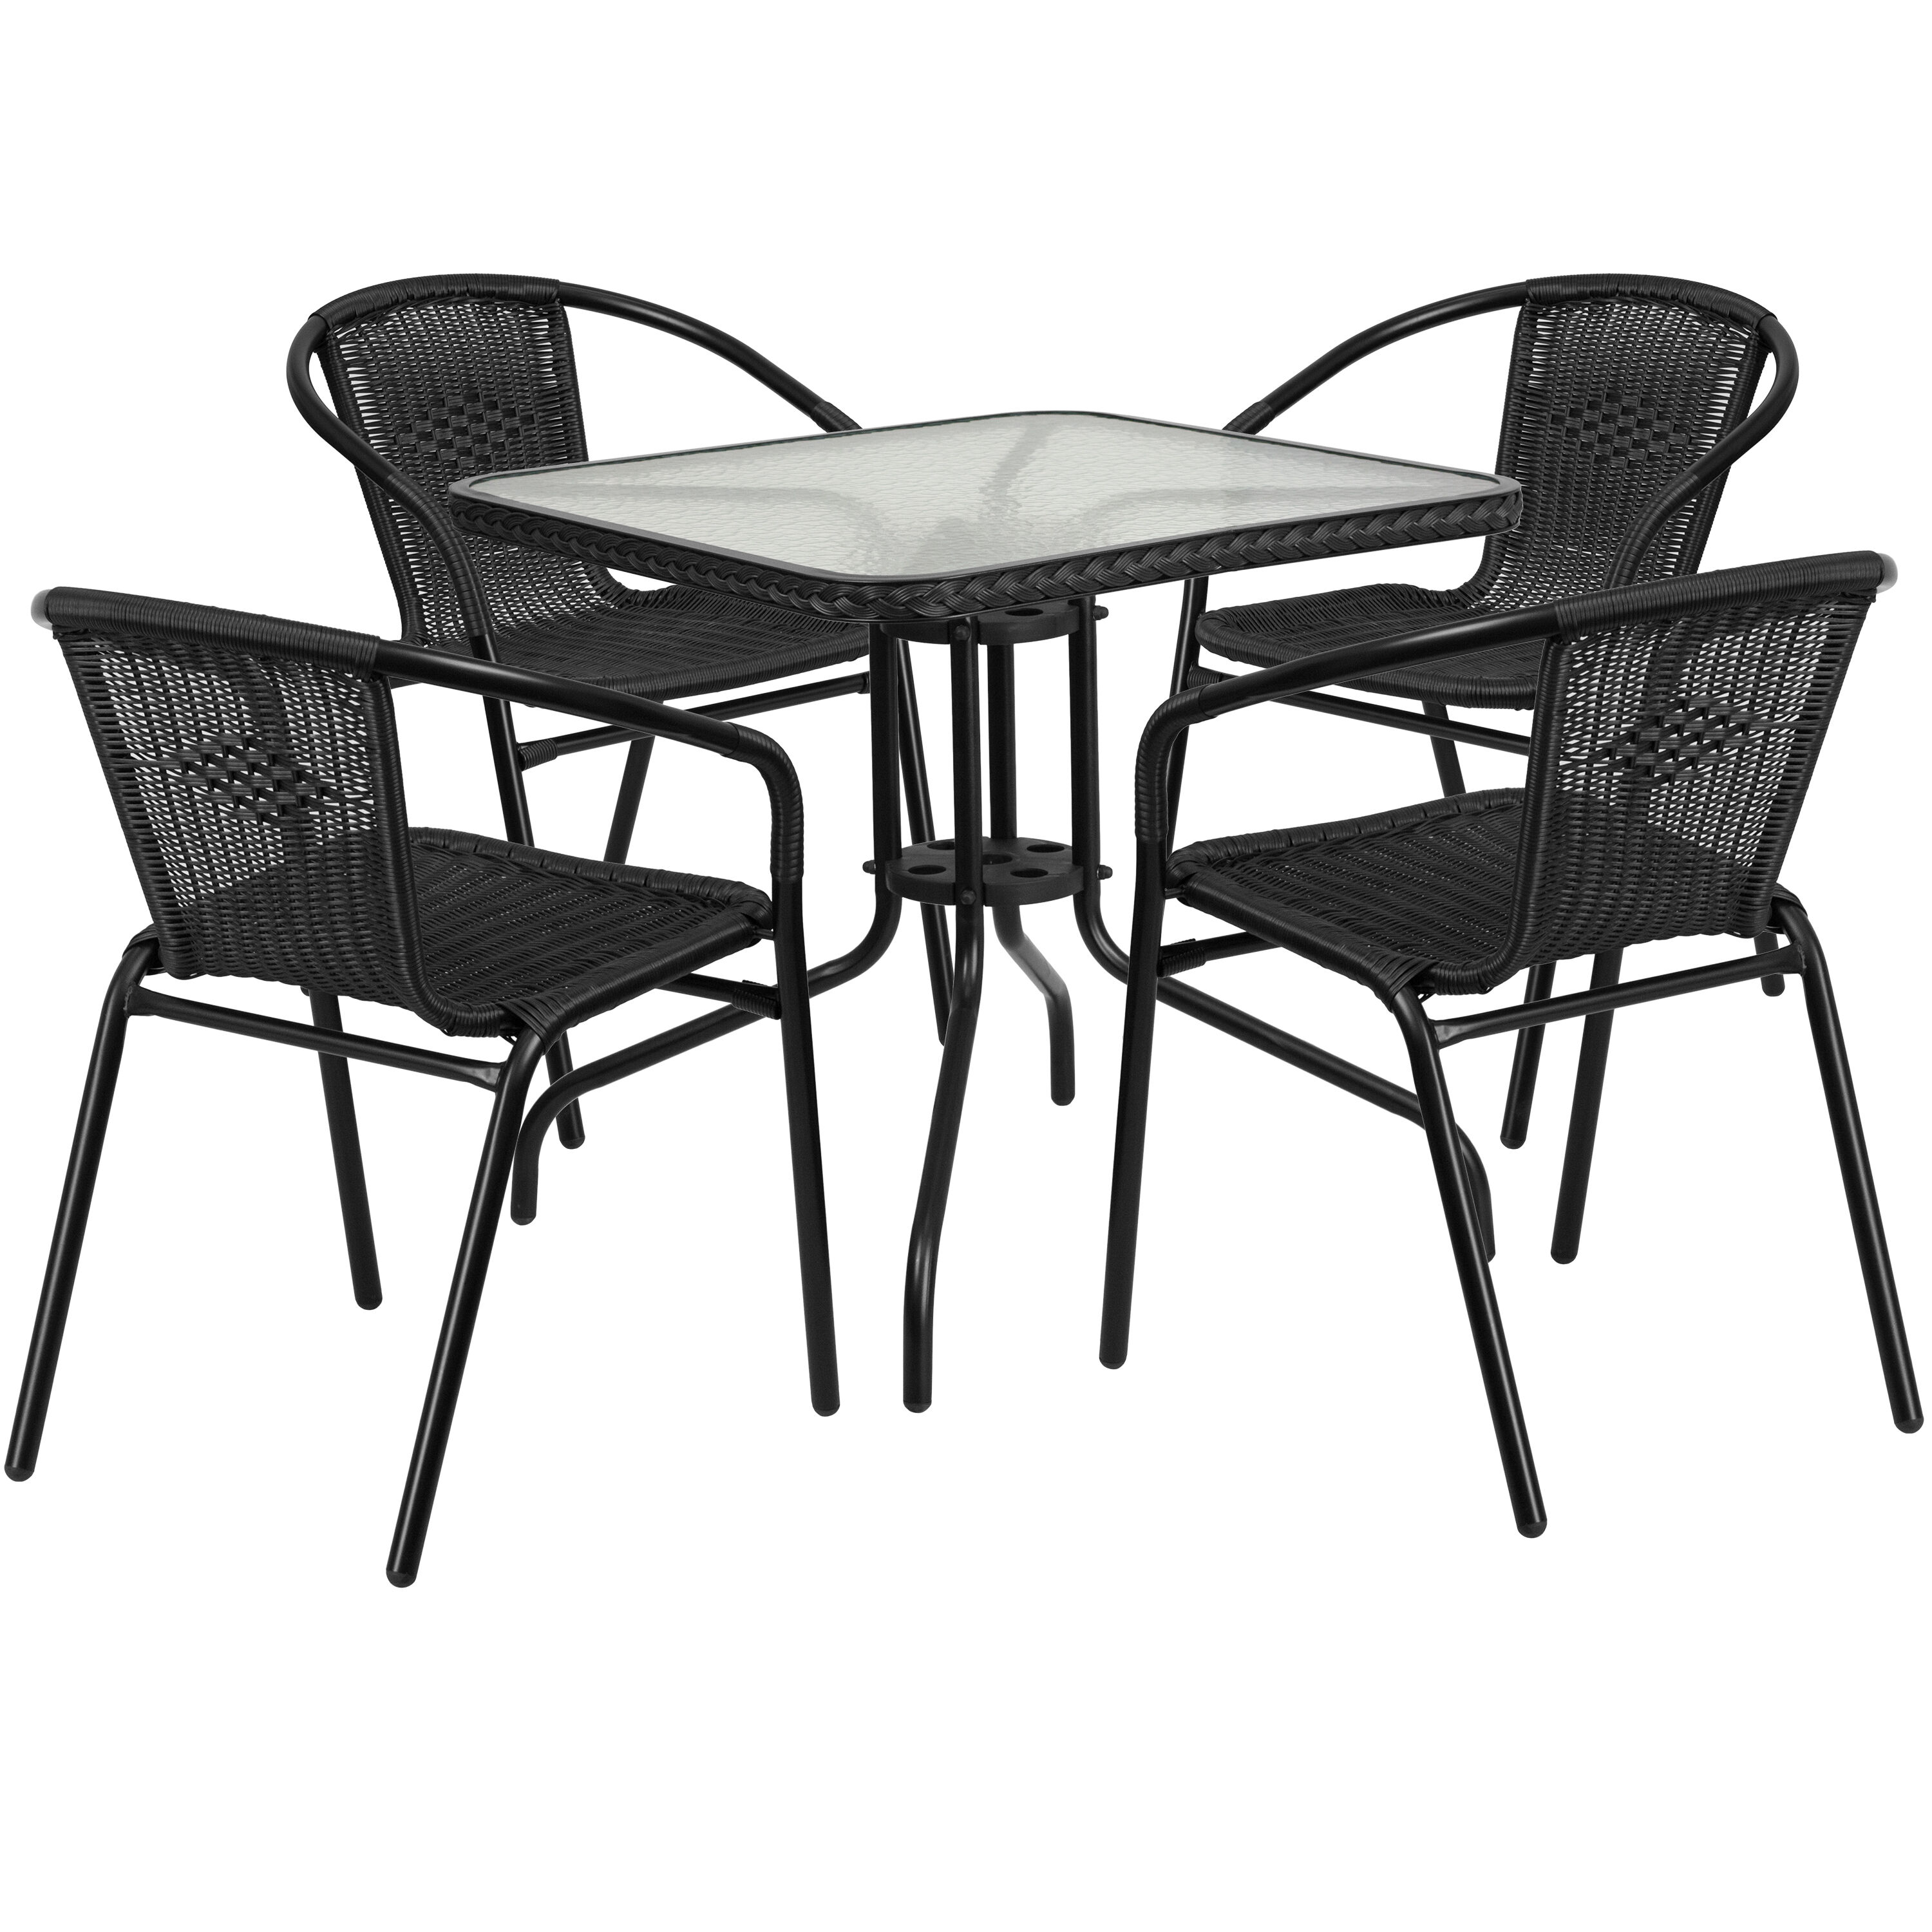 Rattan Table 28 Square Glass Metal Table With Black Rattan Edging And 4 Black Rattan Stack Chairs